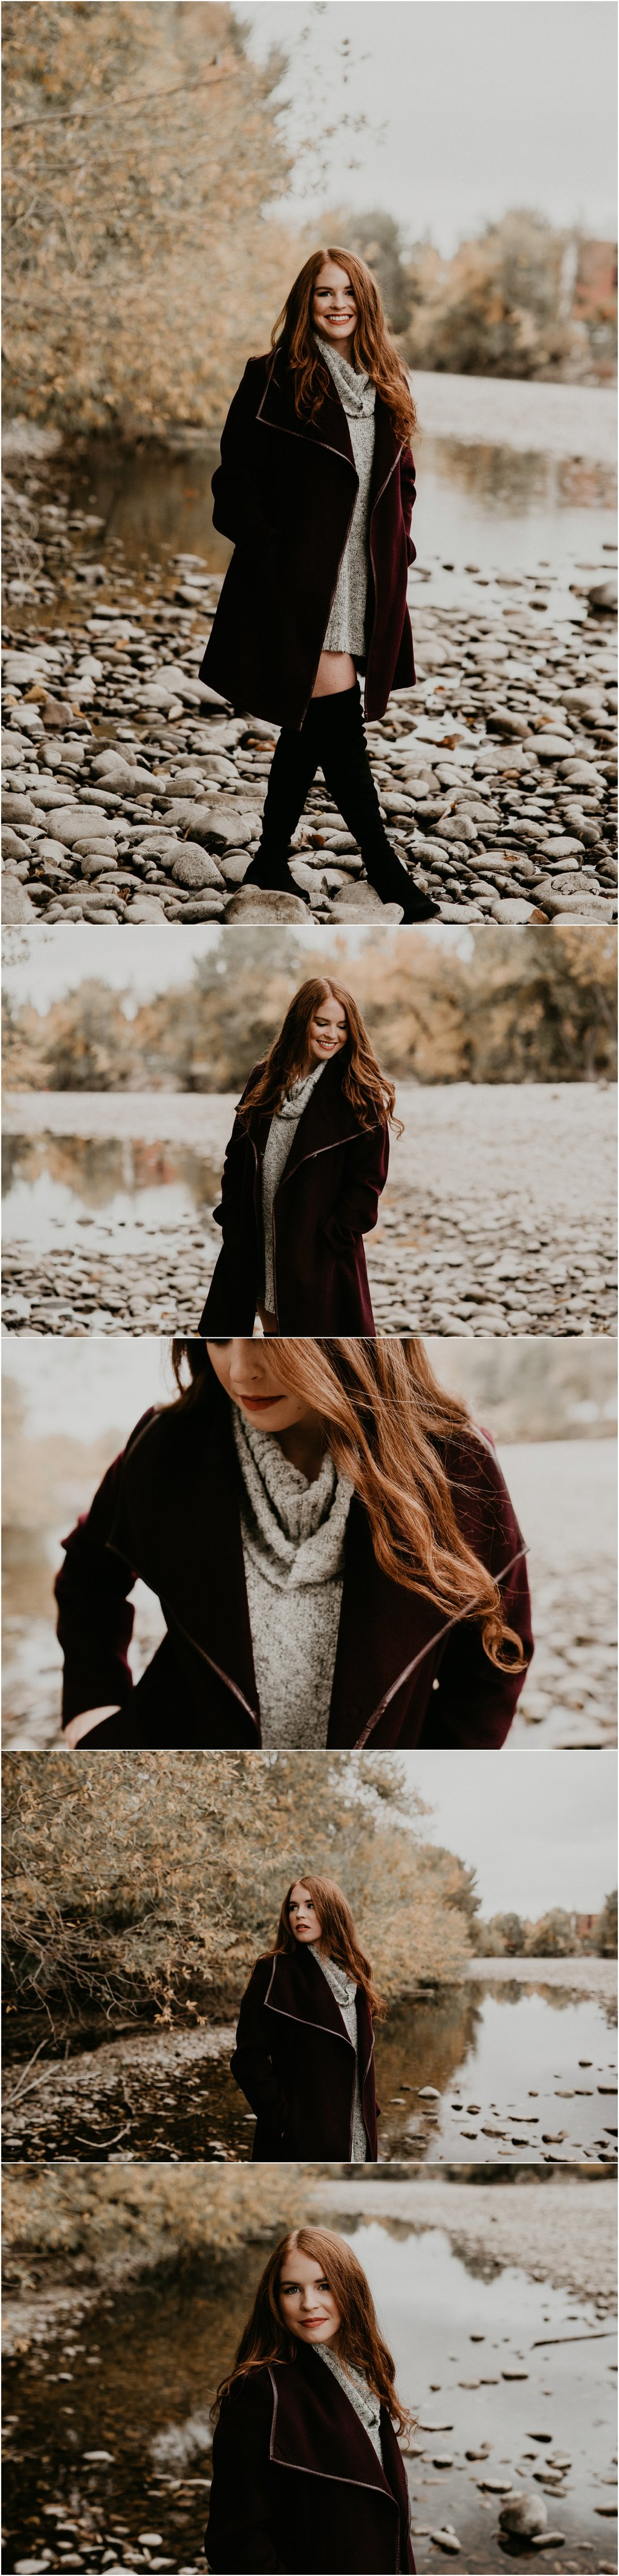 Boise Senior Photographer Makayla Madden Photography Eagle High Senior Harlee Edwards Red Head Fall Downtown Boise Senior Pics Meridian Senior Photographer Fall Fashion